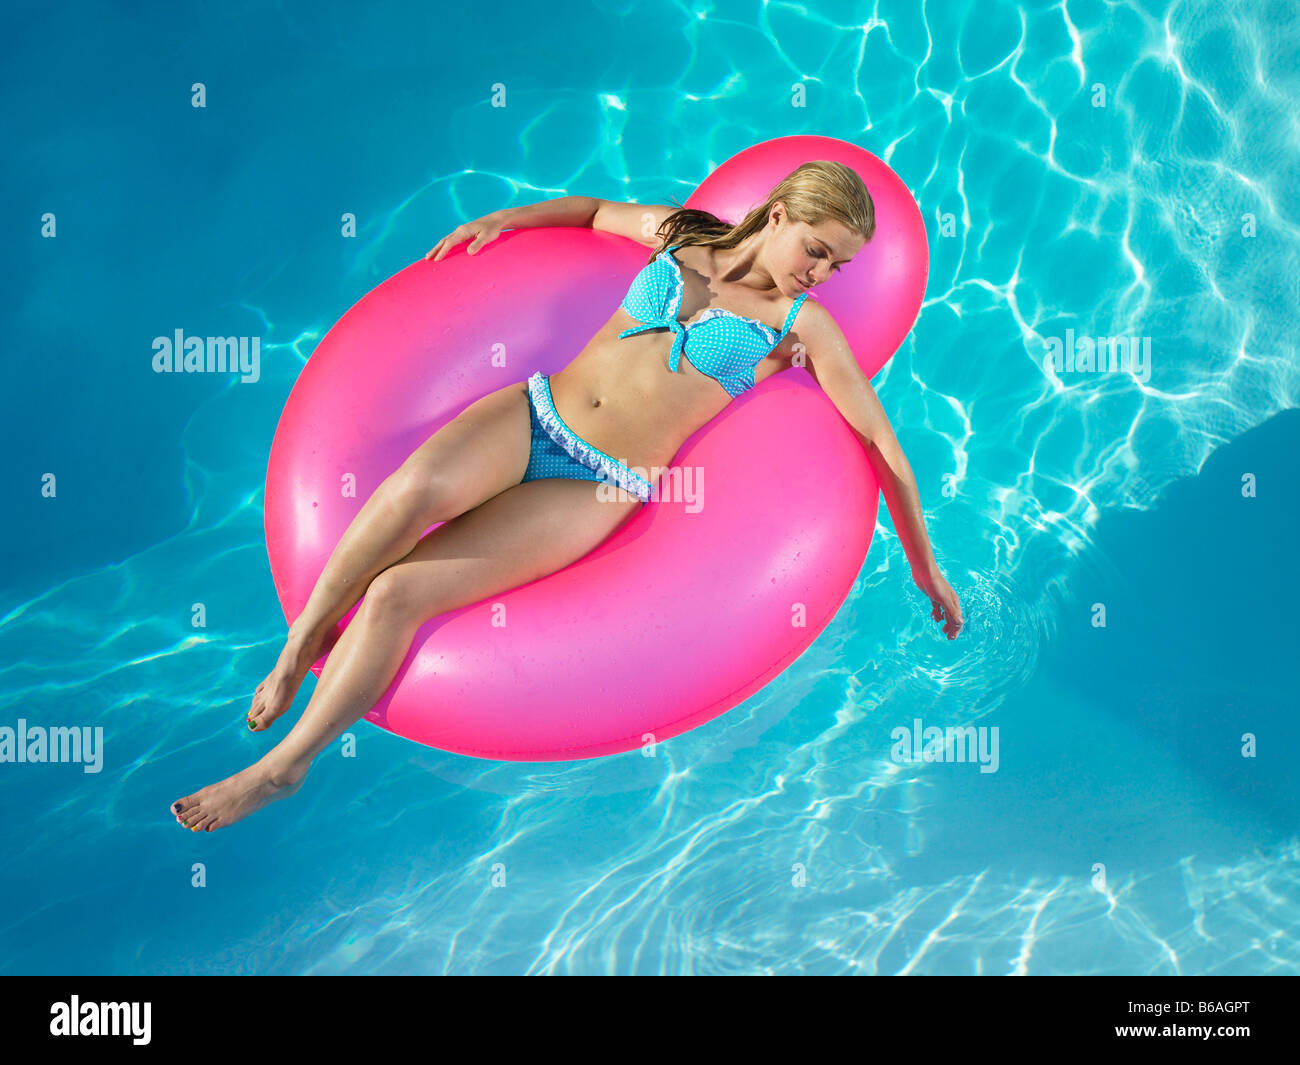 girl floating in inflatable raft stock photos girl. Black Bedroom Furniture Sets. Home Design Ideas